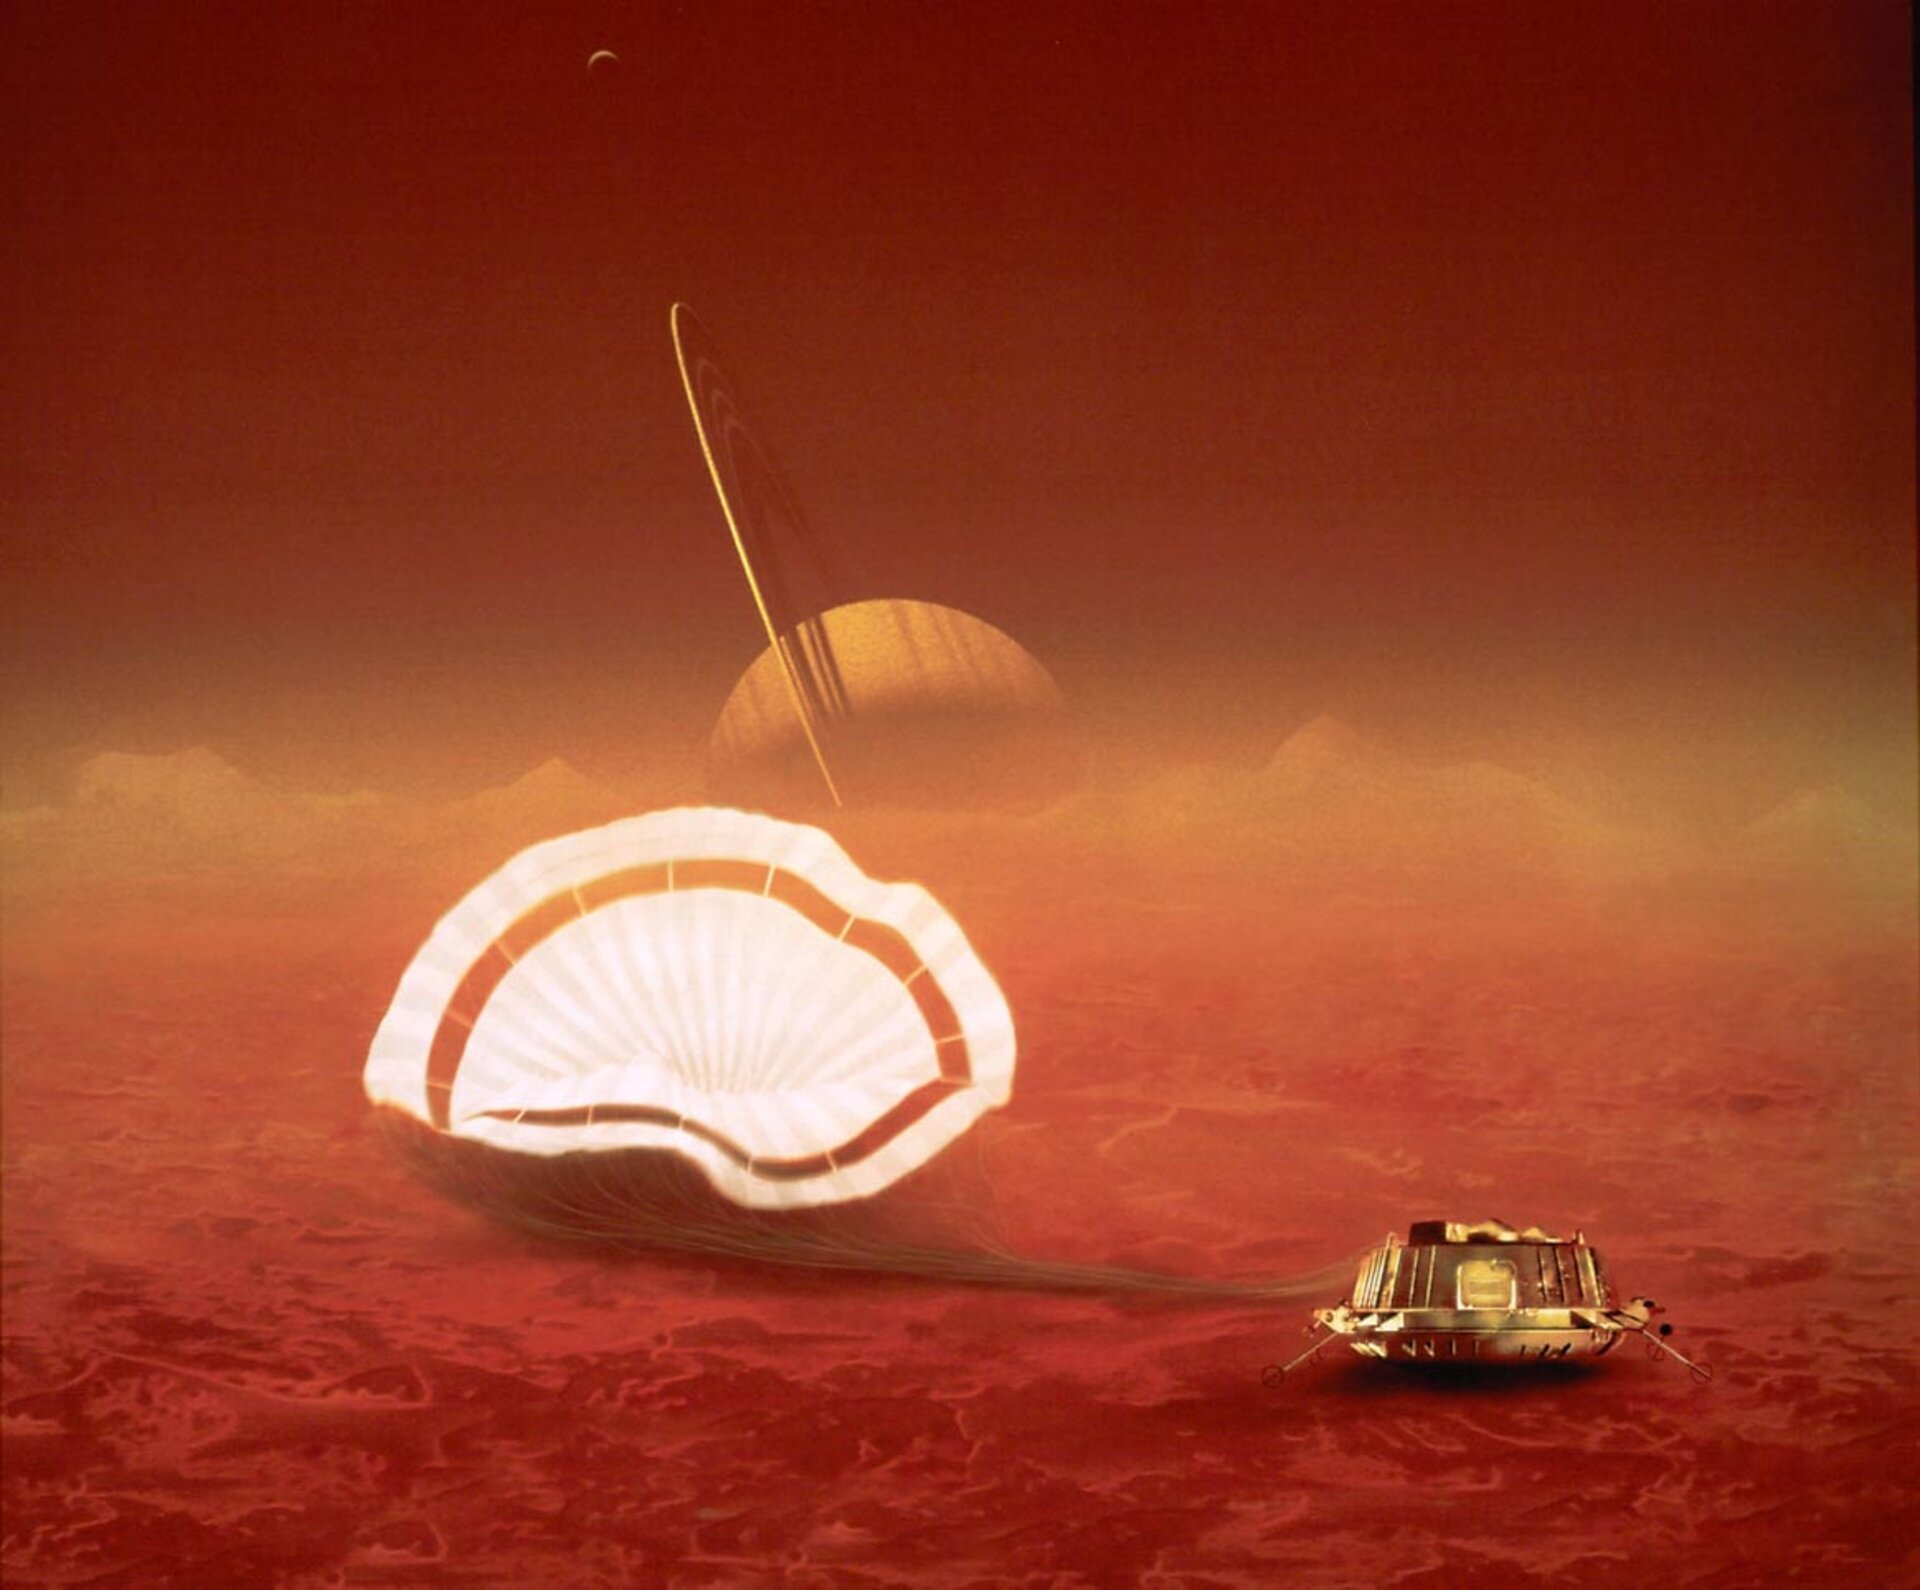 Artist's impression of ESA's Huygens probe on Titan